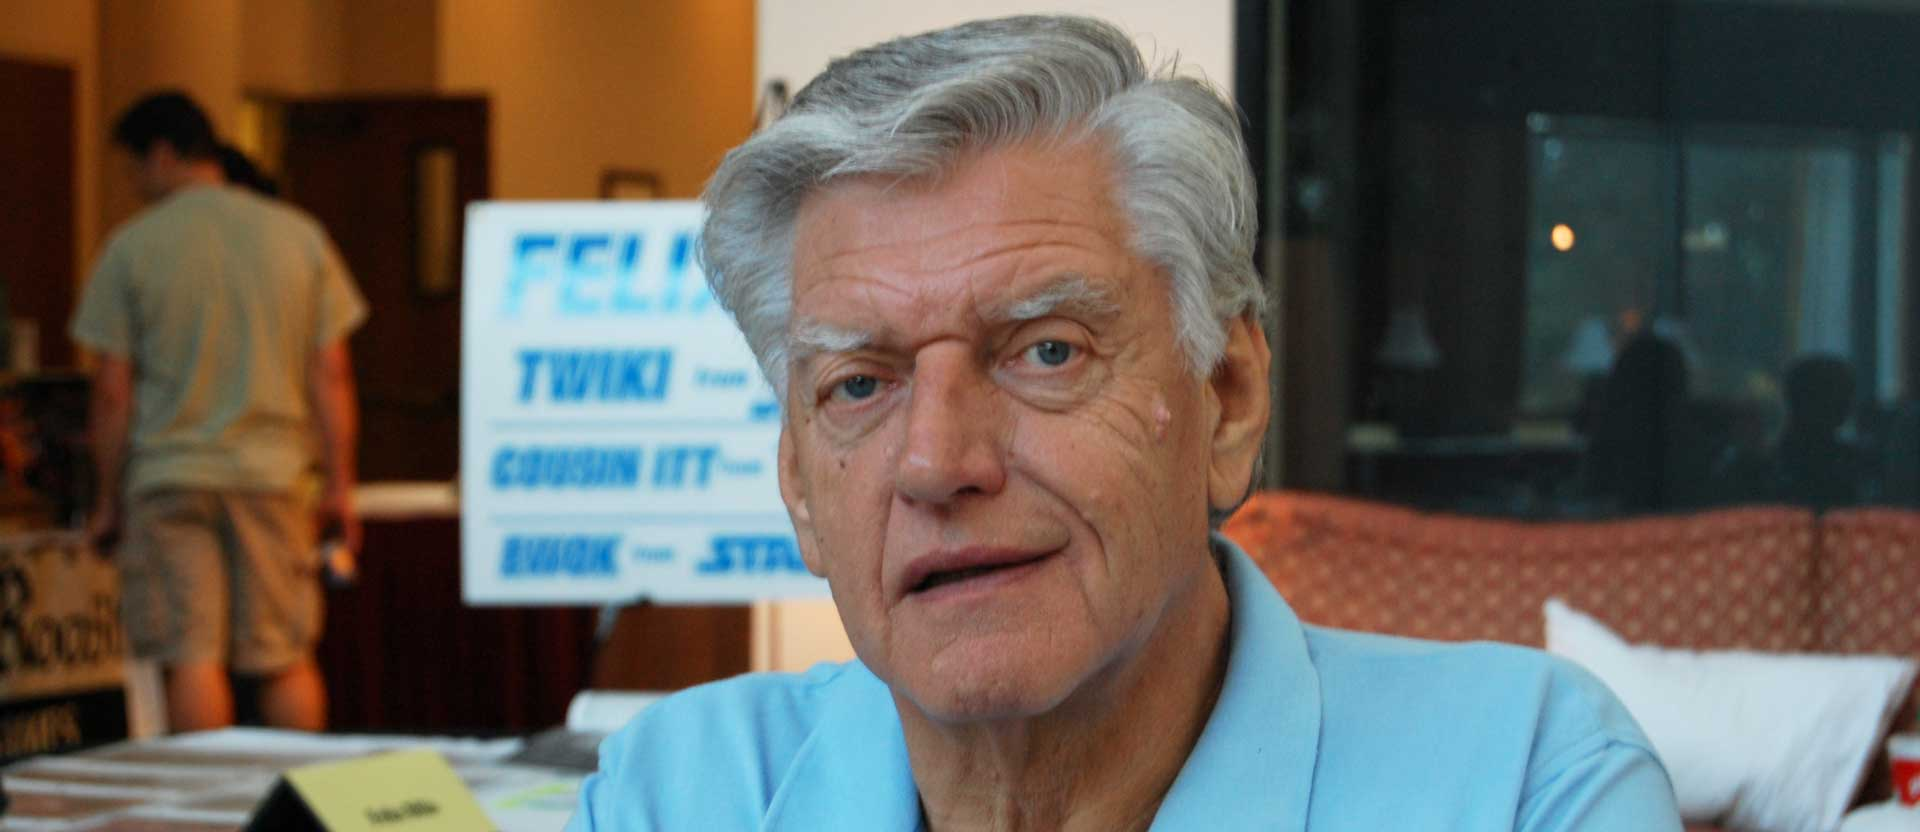 David Prowse at Mountain Con III in 2007